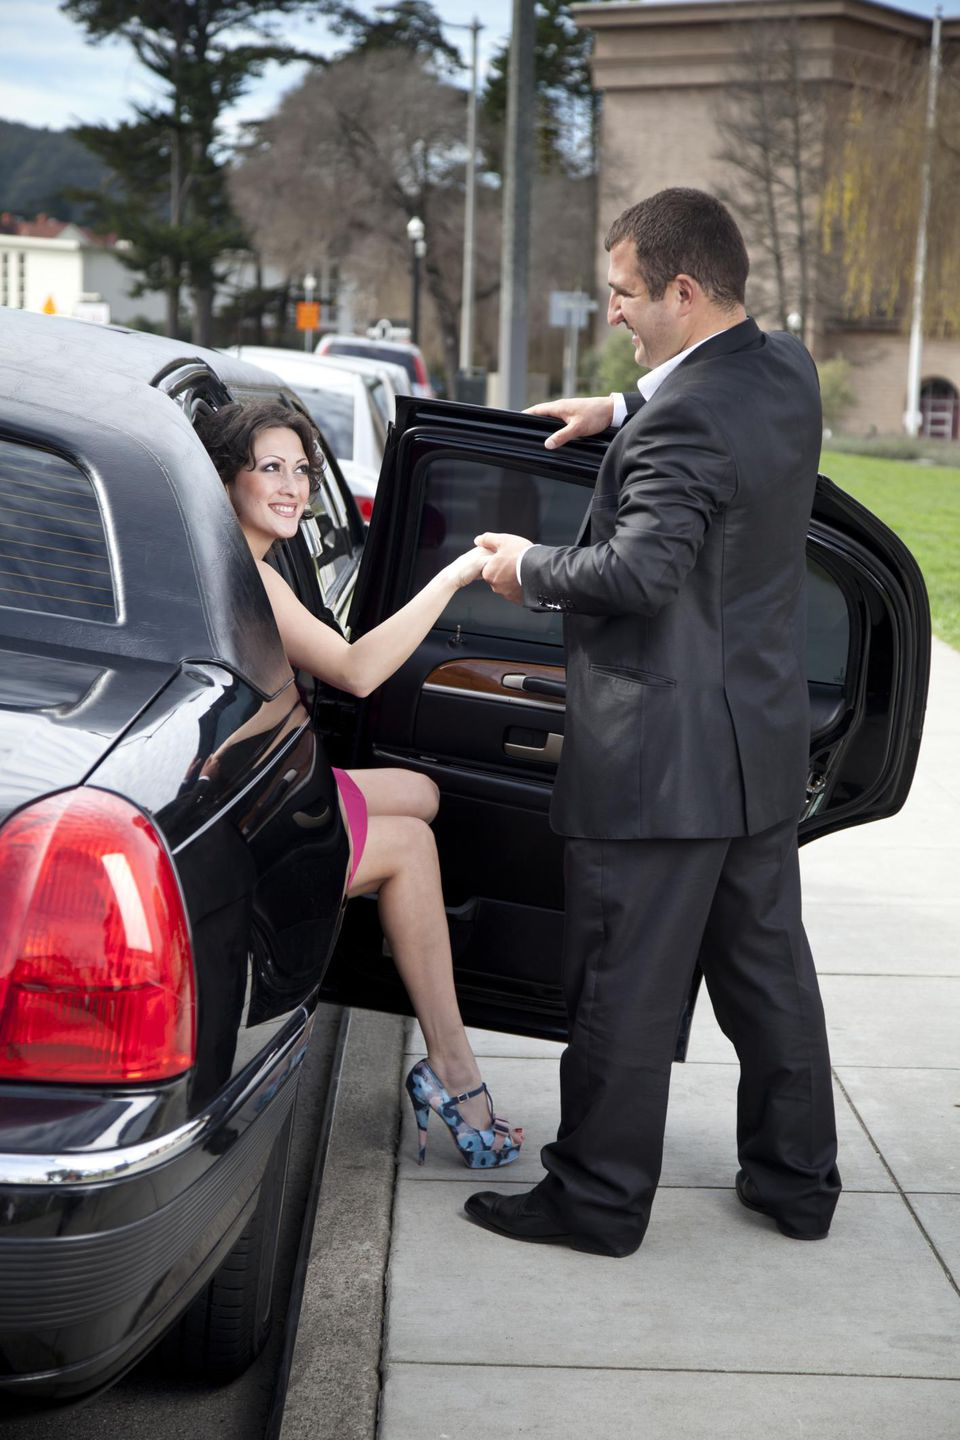 'A man helps an attractive, young woman out of a stretch limousine at the San Francisco's Palace of Fine Arts in the Marina District'